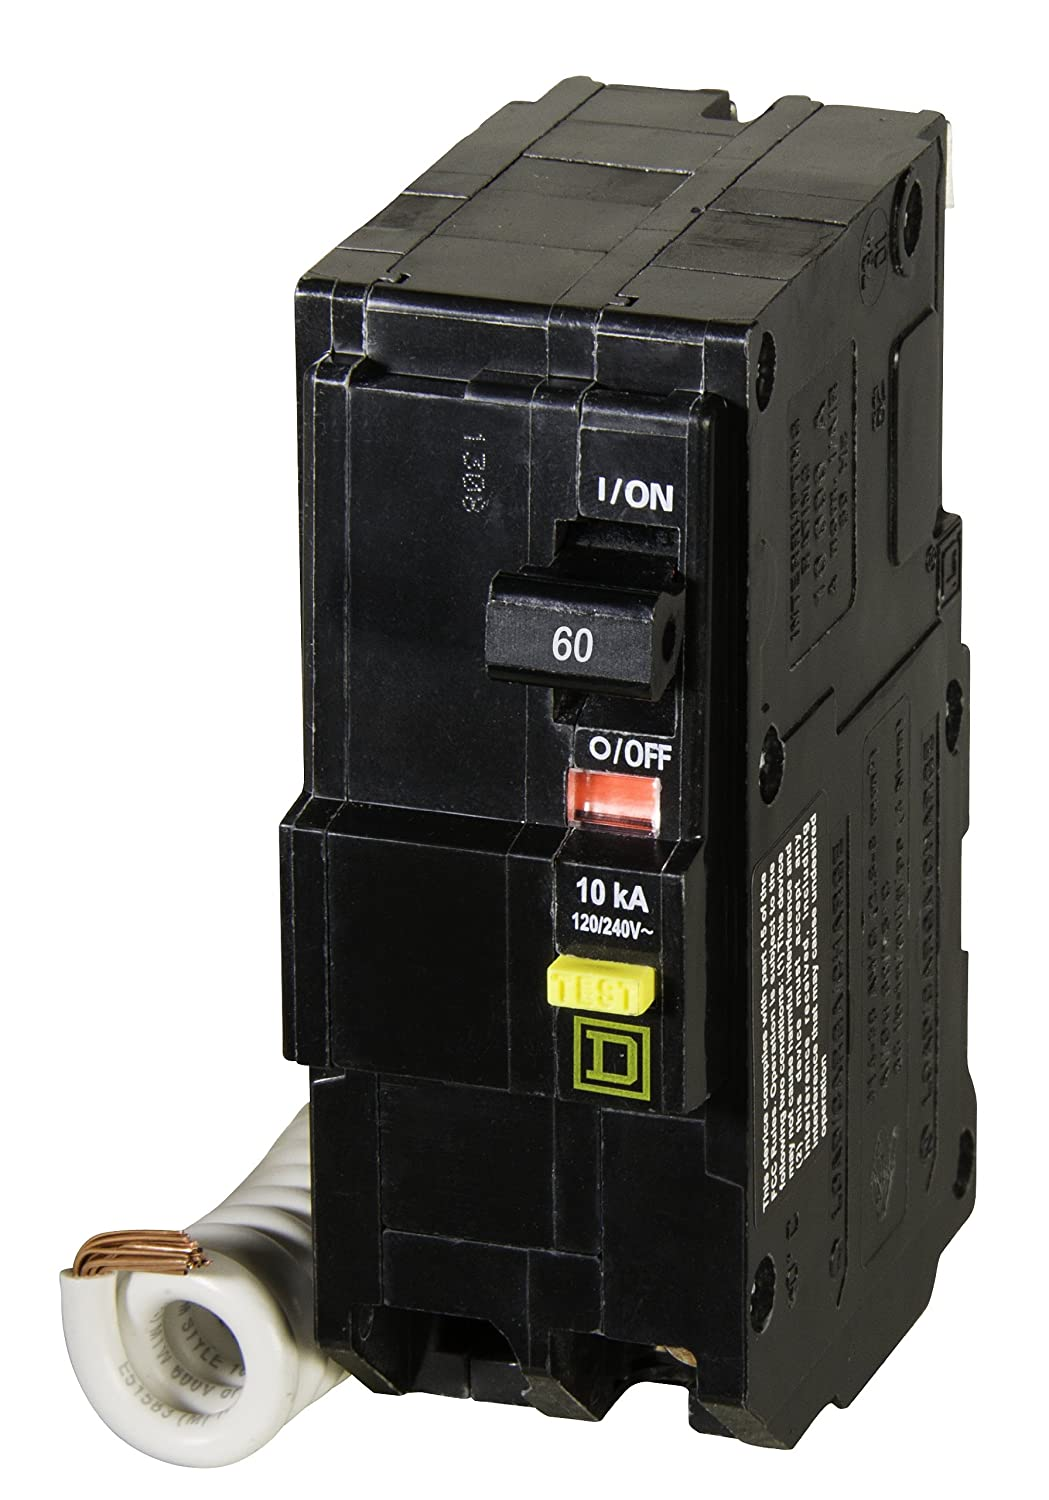 81G3Y2clx L._SL1500_ square d by schneider electric qo260gficp qo 60 amp two pole gfci qo260gfi wiring diagram at couponss.co